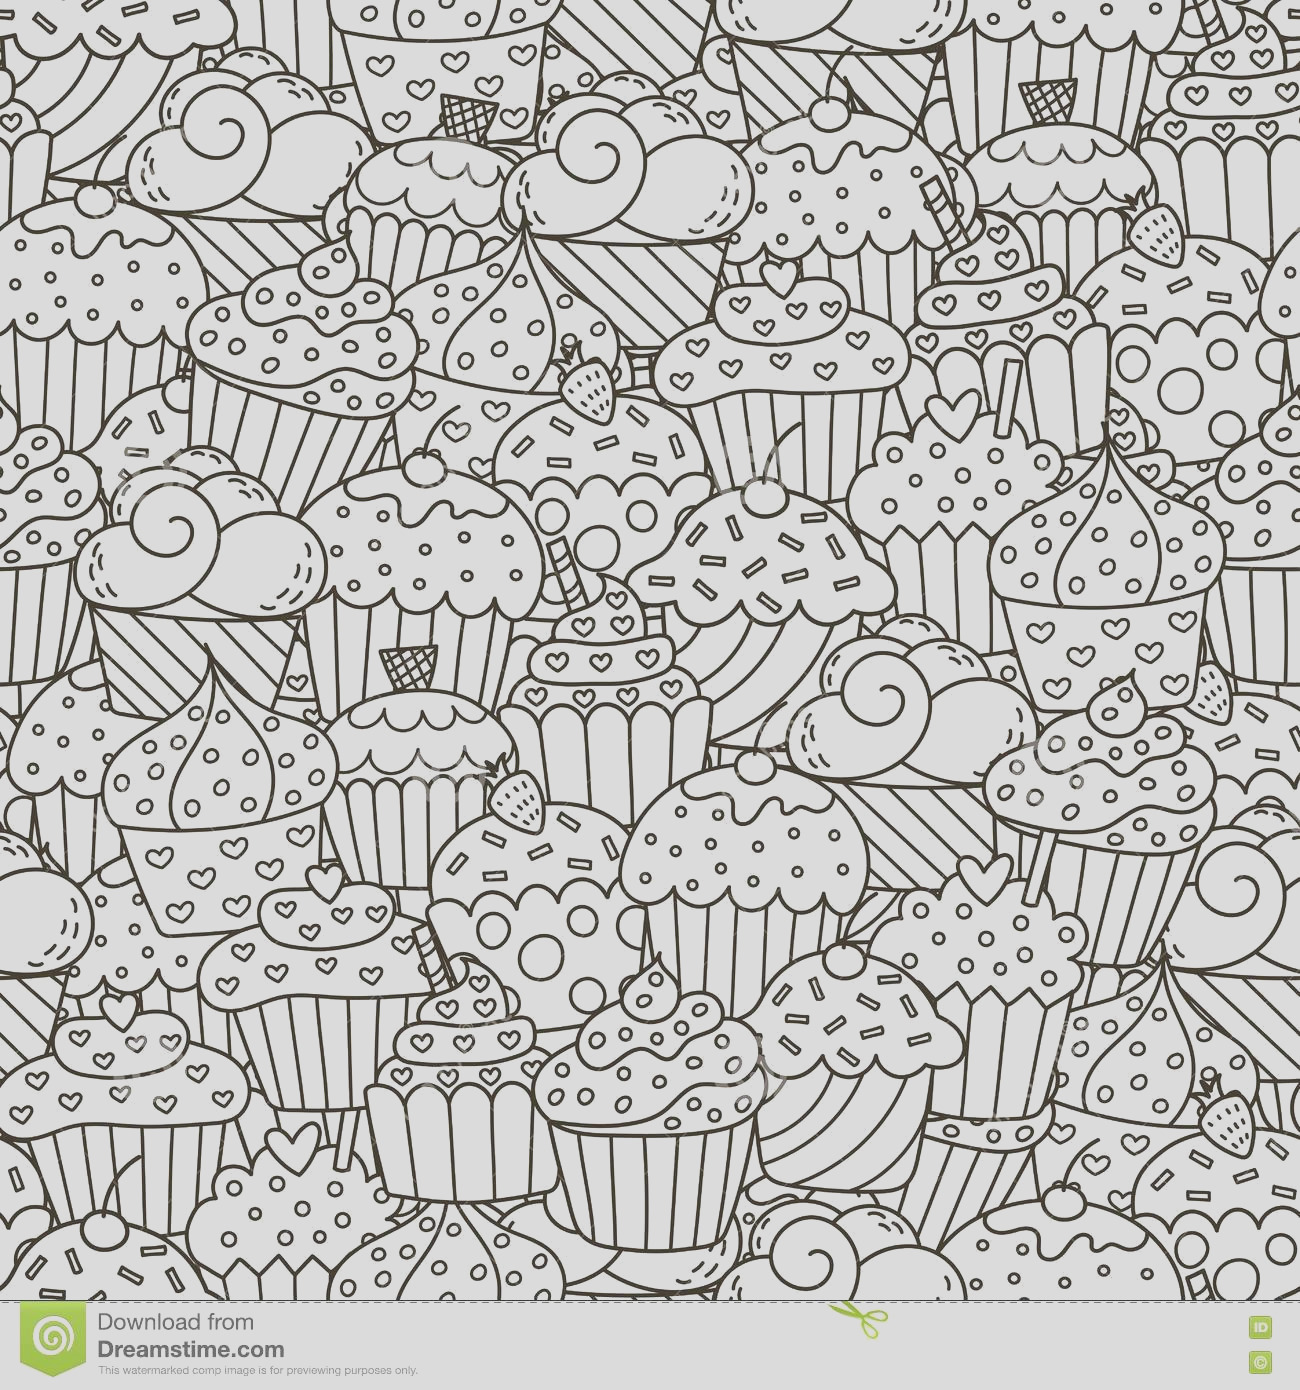 stock illustration black white cupcakes seamless pattern hand drawn muffins background great coloring book wrapping printing fabric image